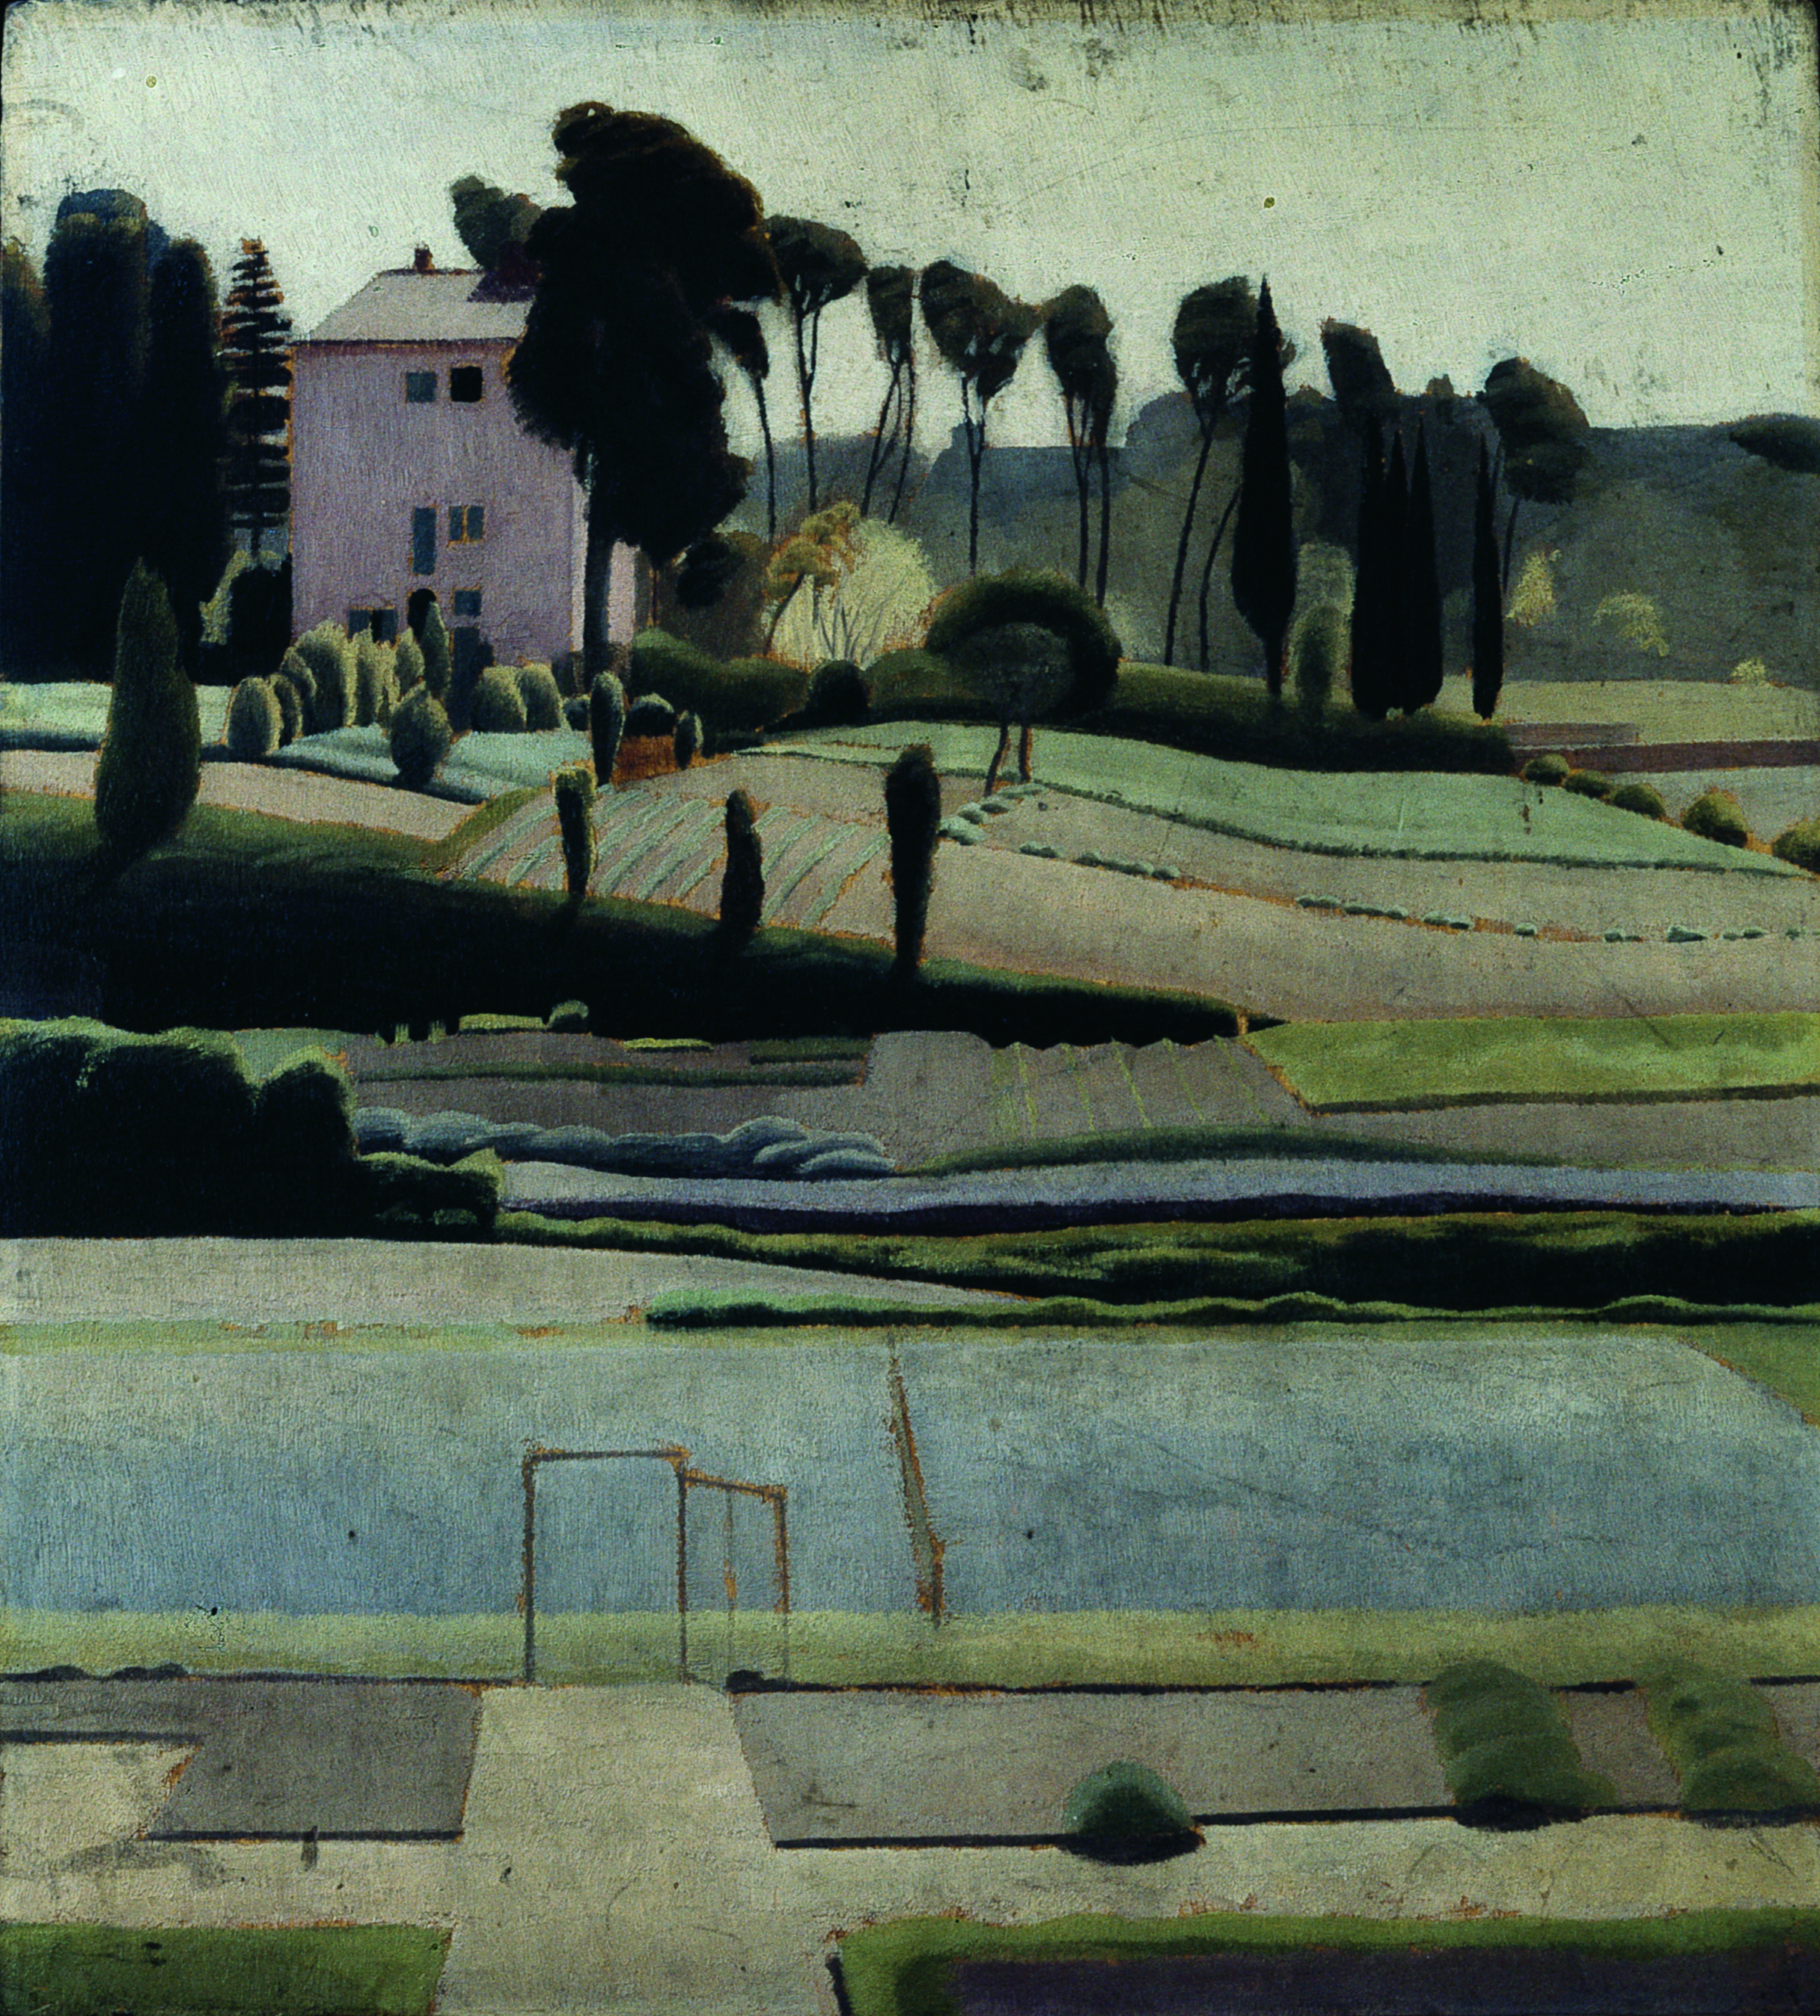 FileA View To The East From British School At Rome By Winifred Knights